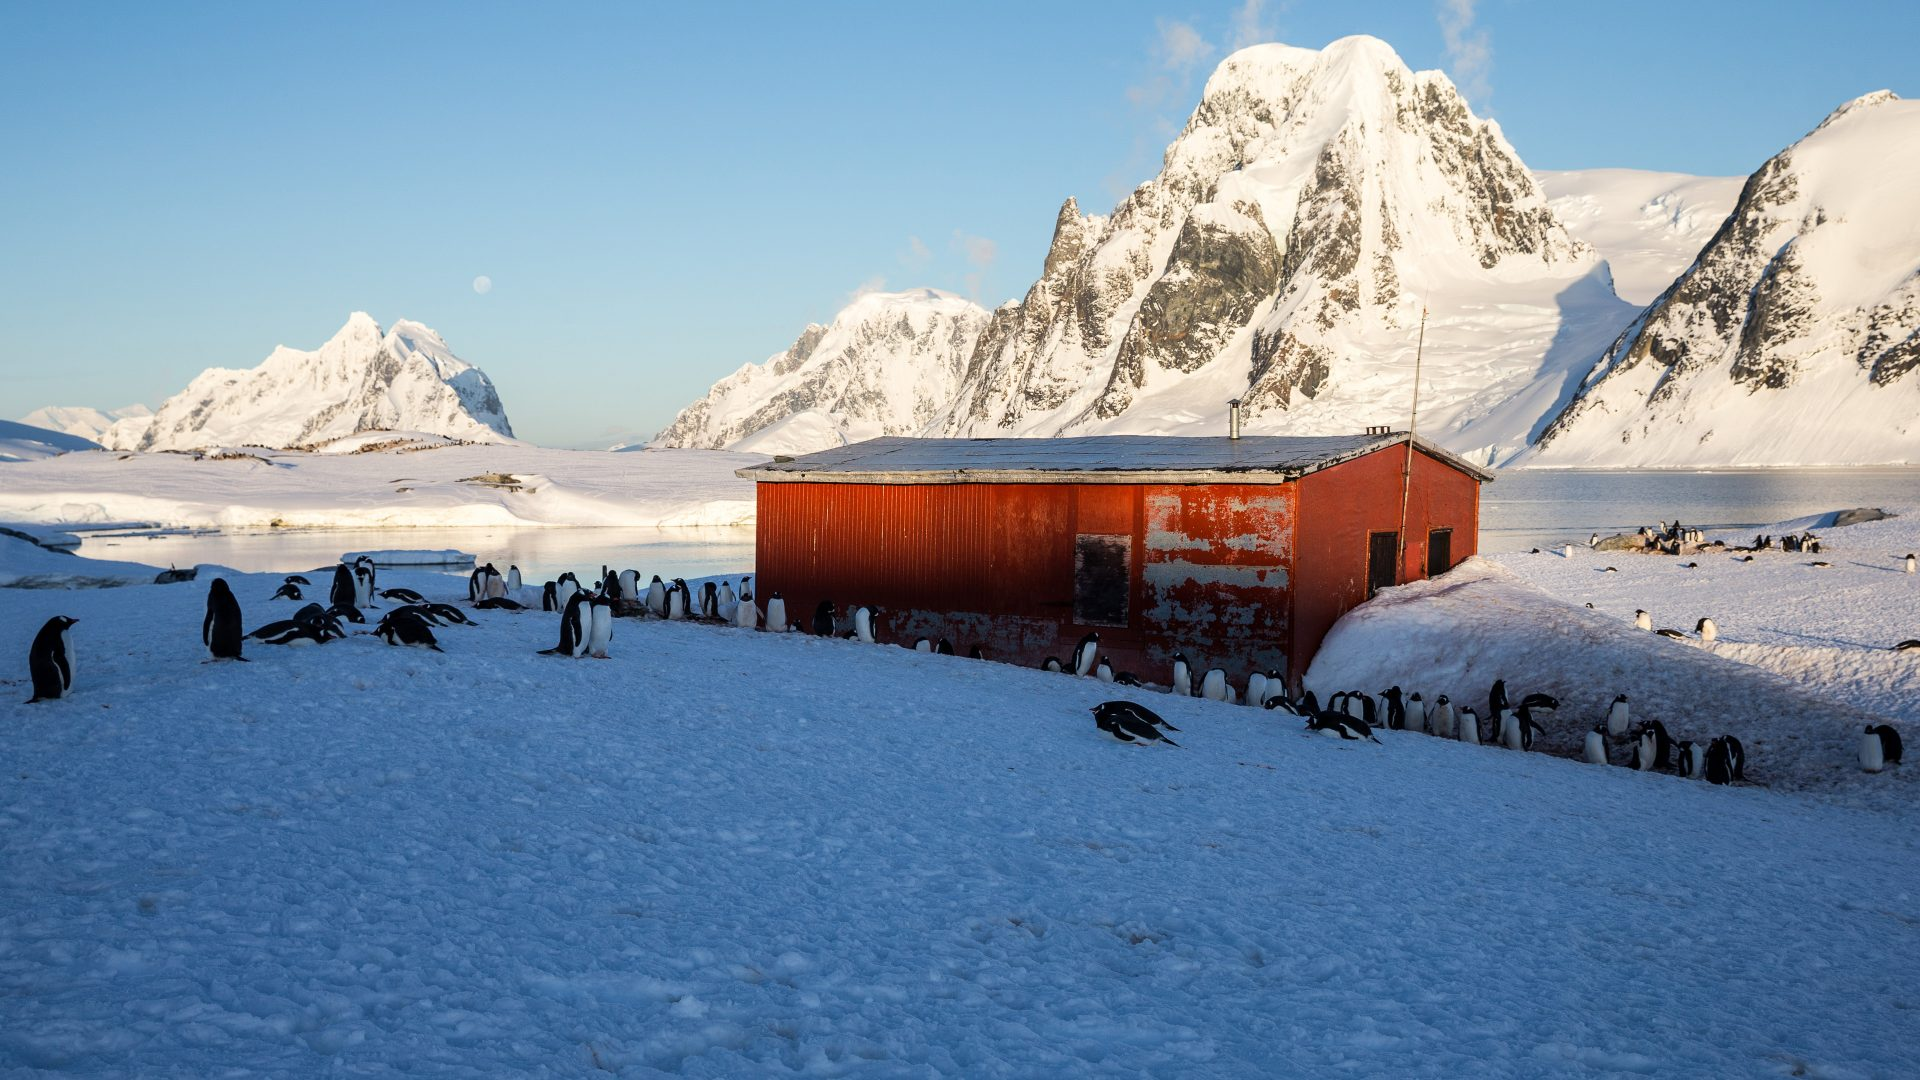 A red building can be seen surrounded by penguins on Petermann Island.